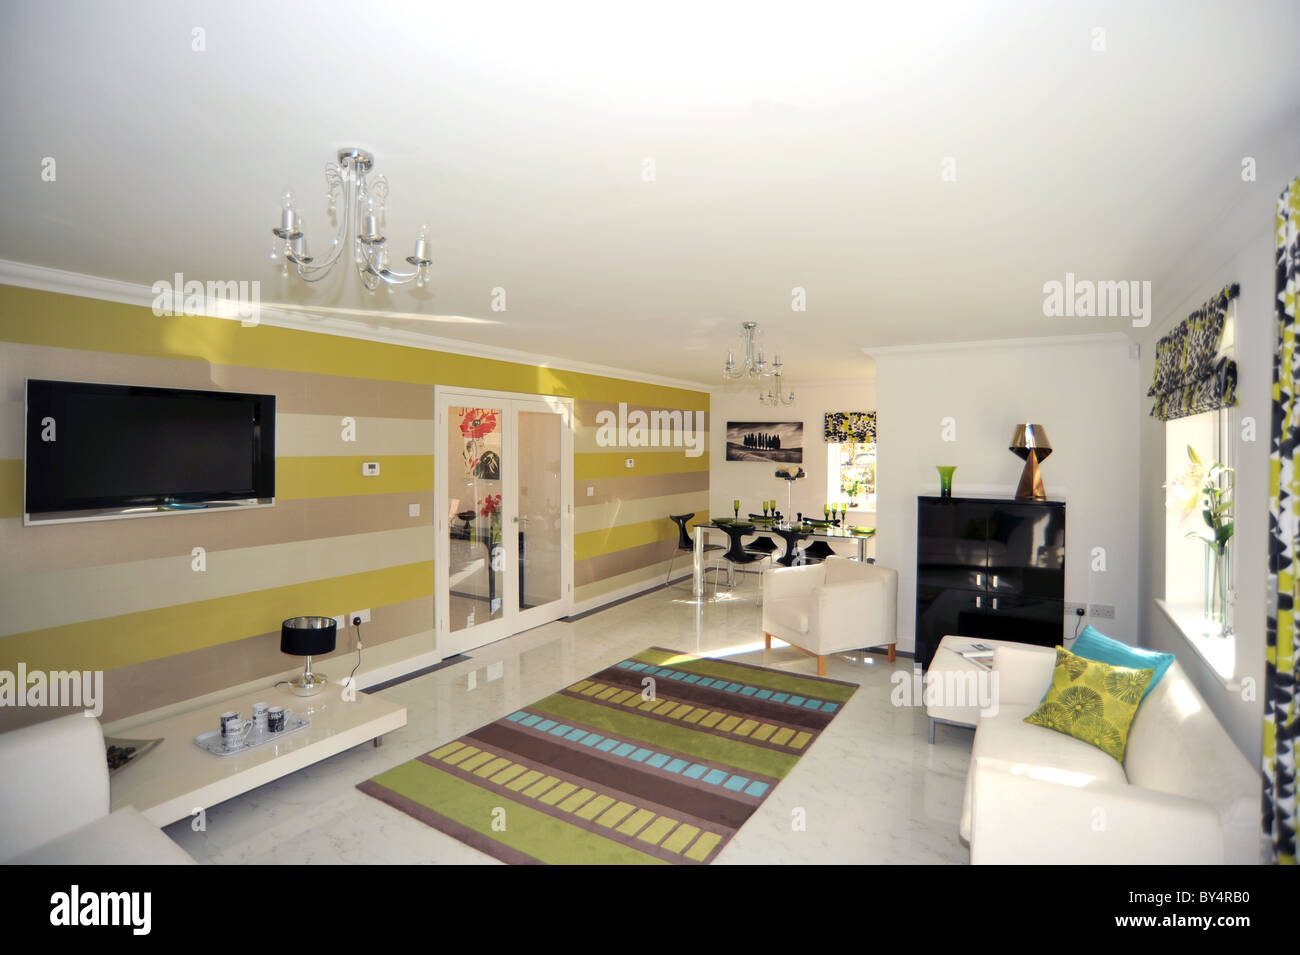 Modern Show Home Lounge With Furniture And Marble Floor Tiles Stock Photo Alamy